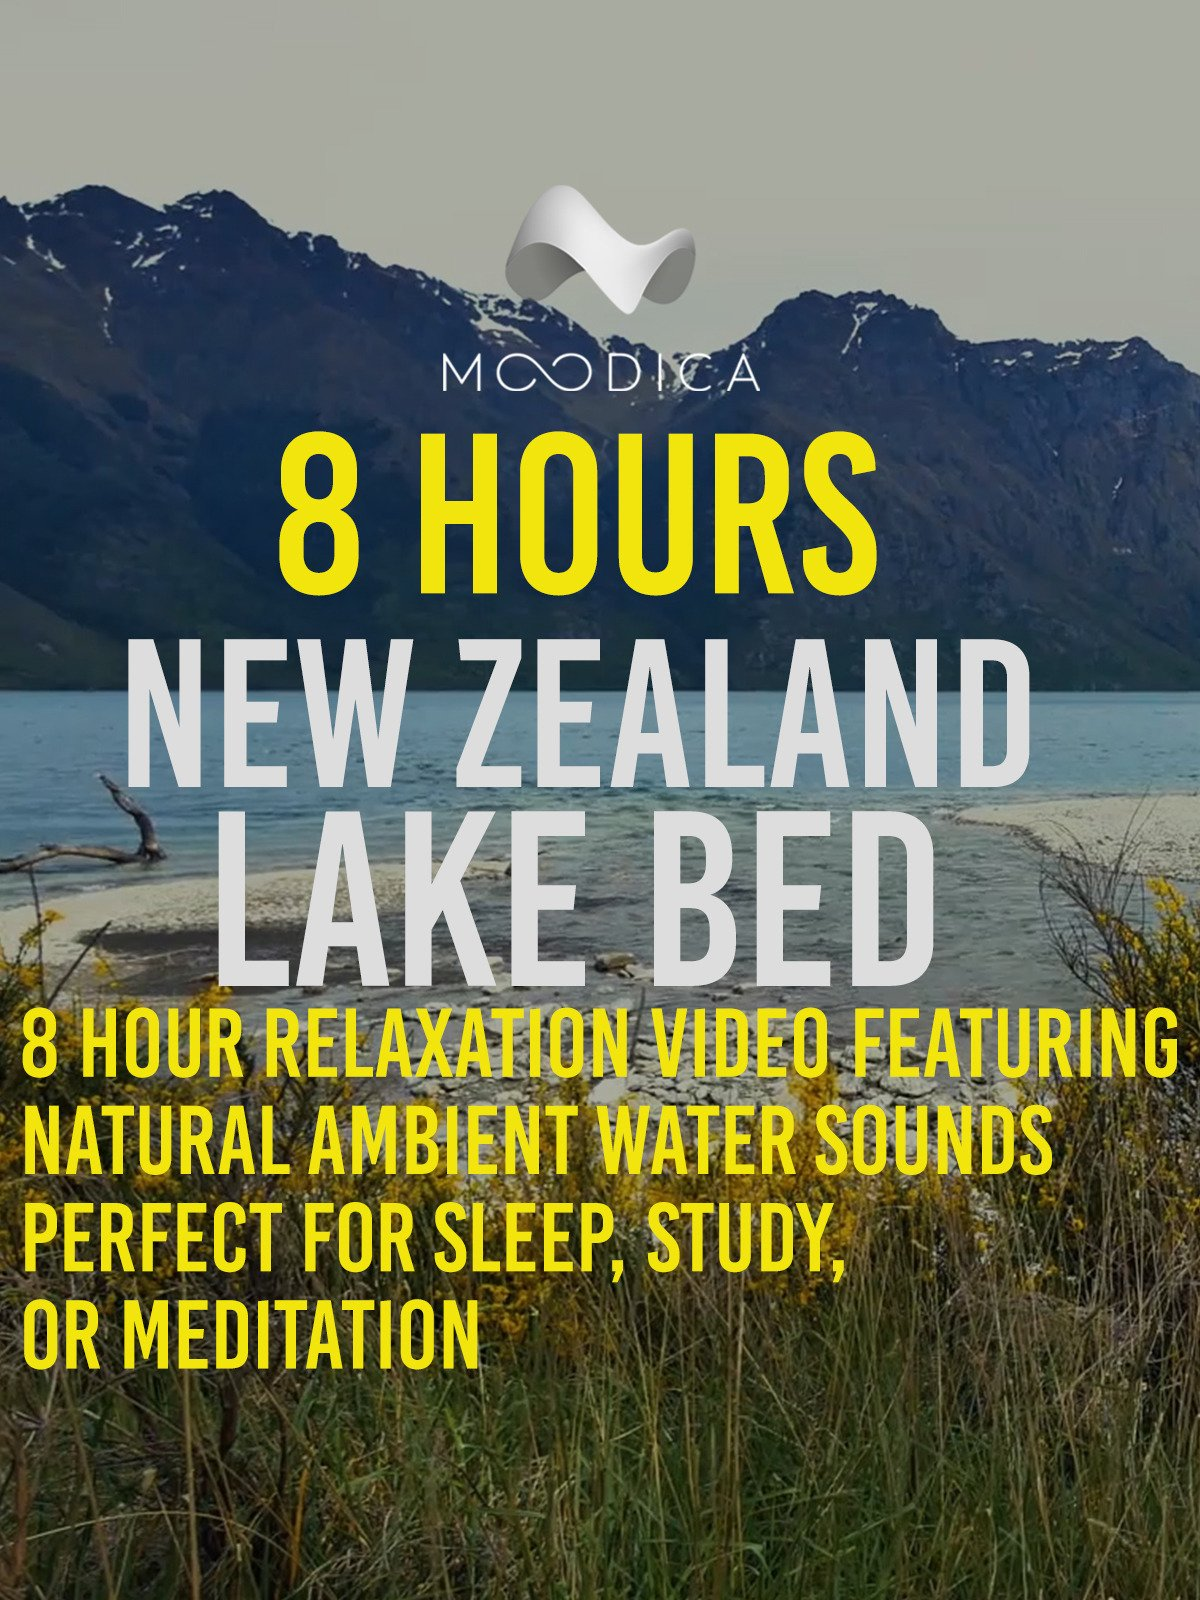 8 Hours: New Zealand Lake Bed: 8 Hour Relaxation Video Featuring Natural Ambietn Water Sounds. Perfect for Sleep, Study, Or Meditation